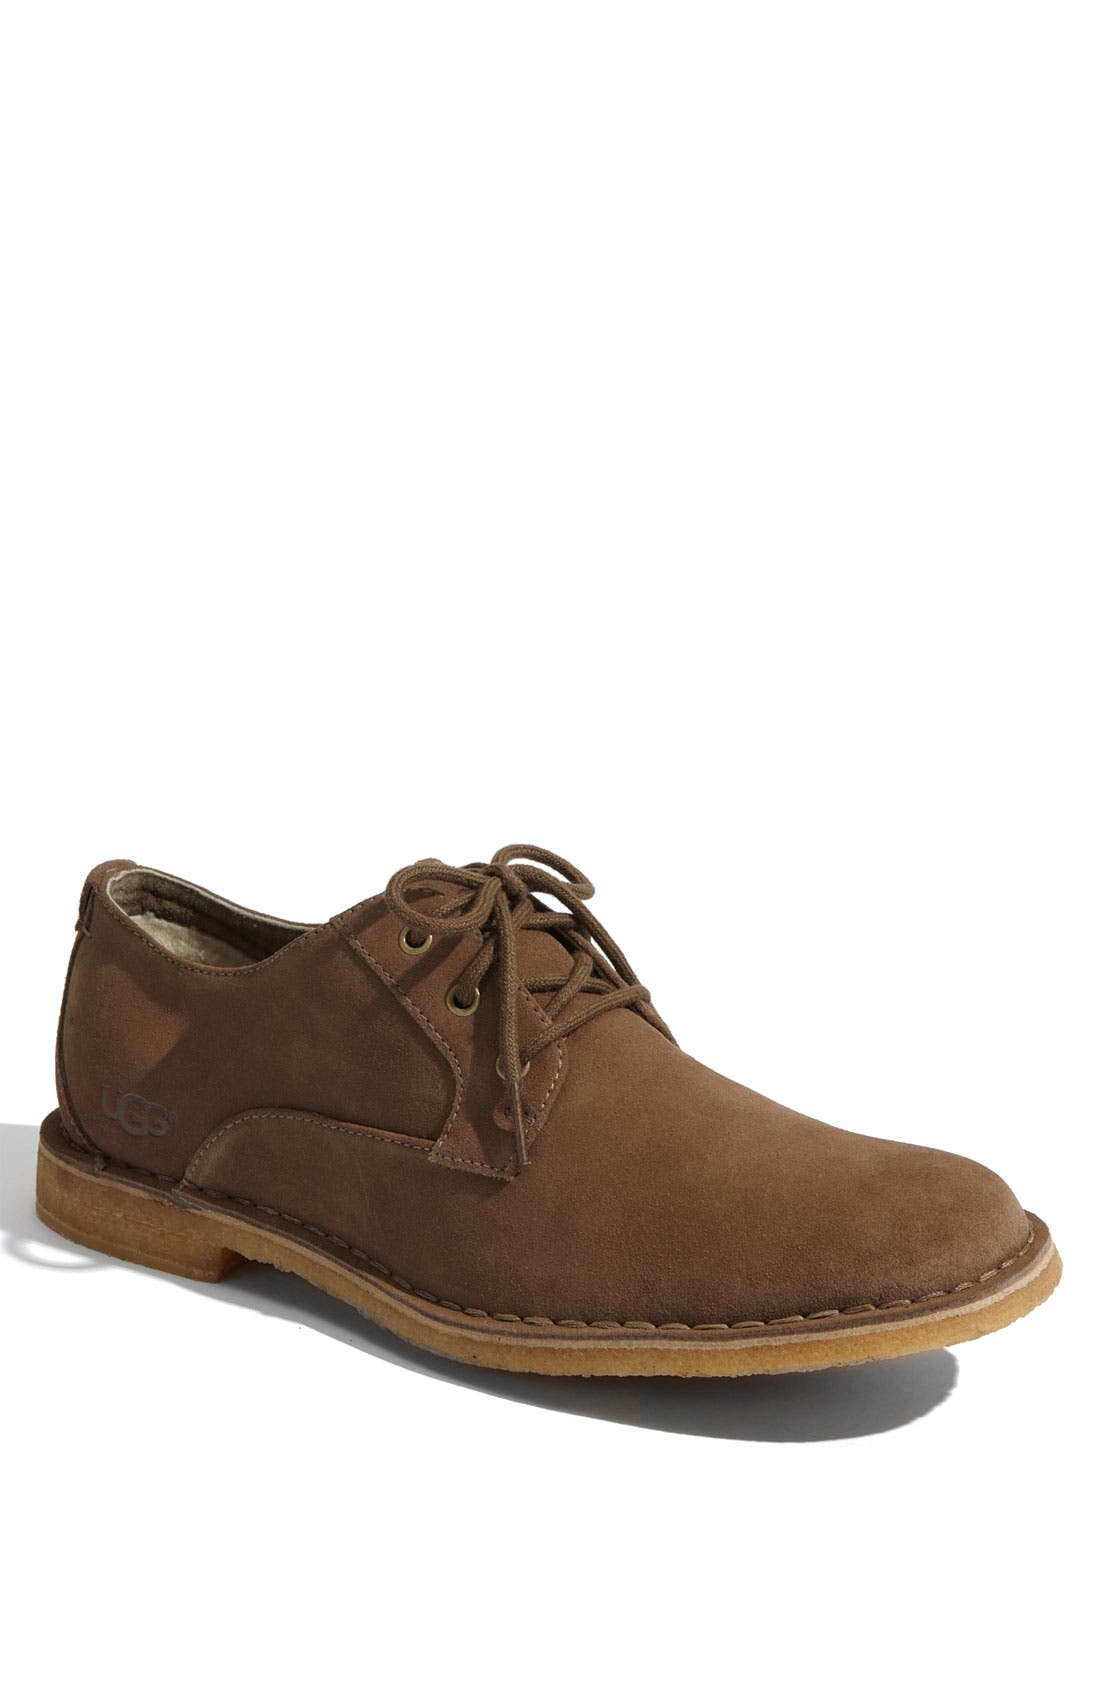 Main Image - UGG® Australia 'Chaucer' Oxford (Men)